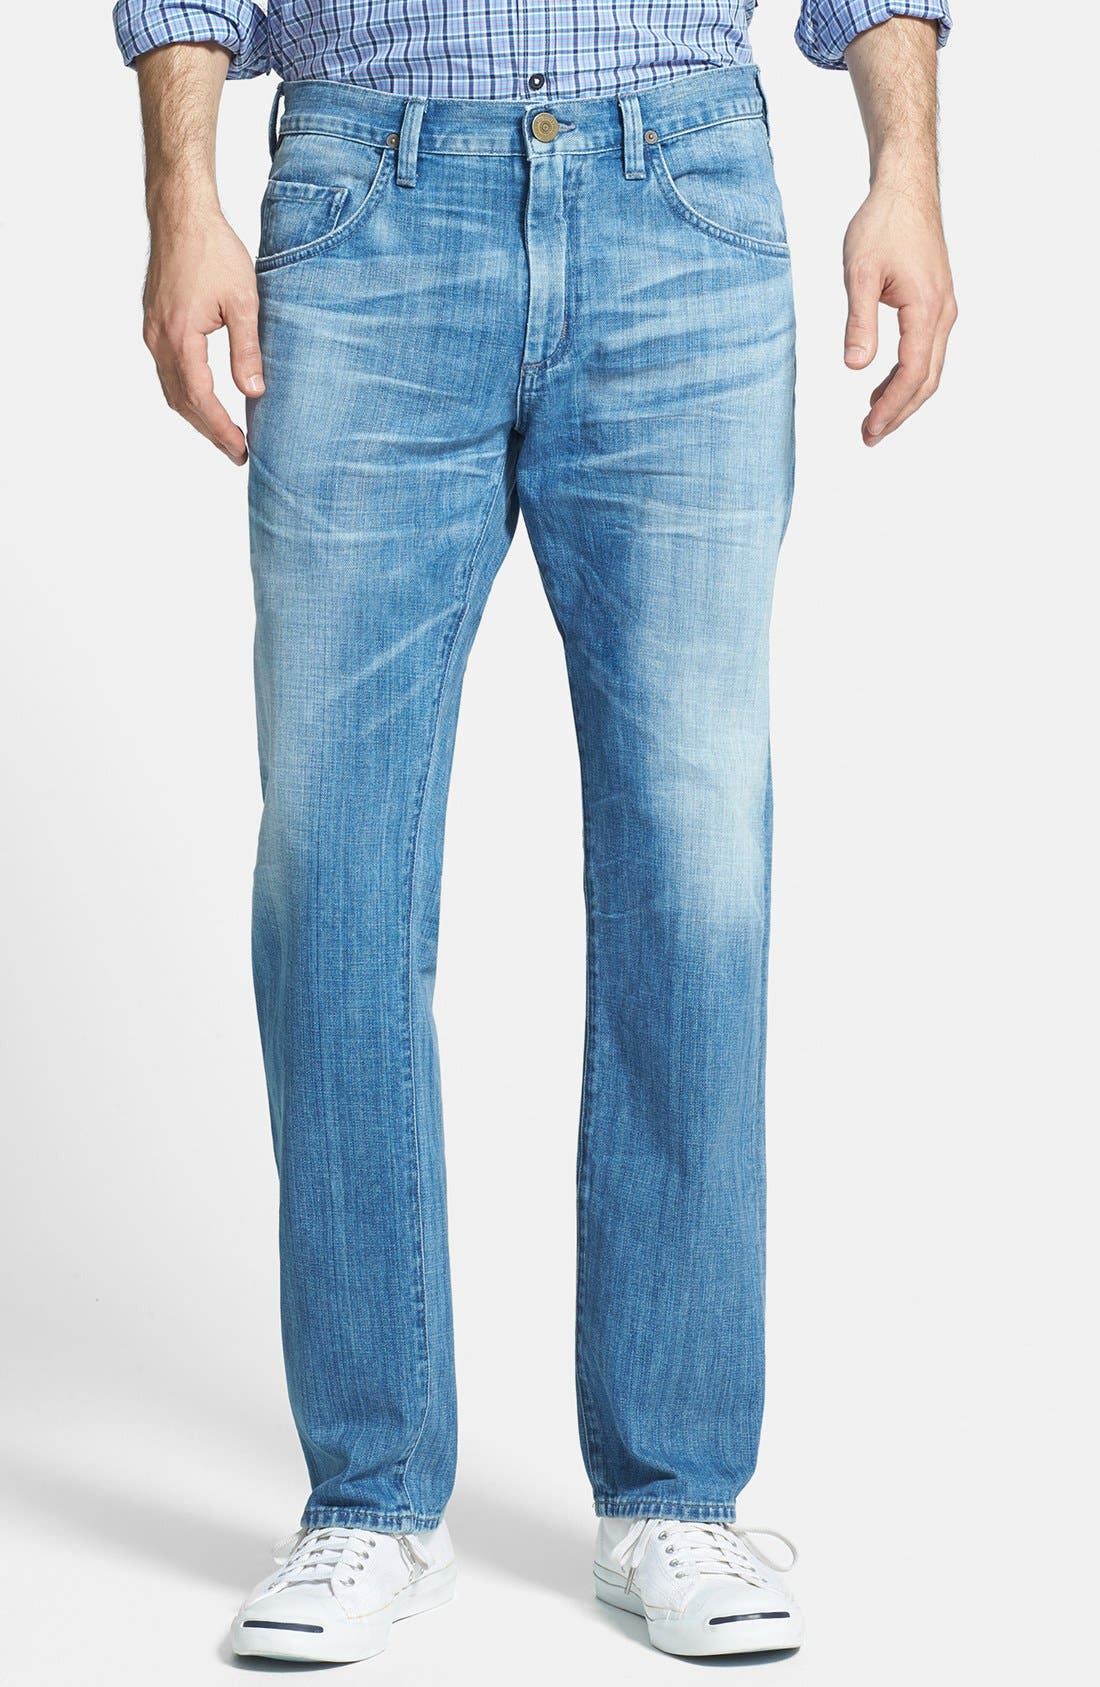 Main Image - Citizens of Humanity 'Perfect' Relaxed Leg Jeans (Jordan)